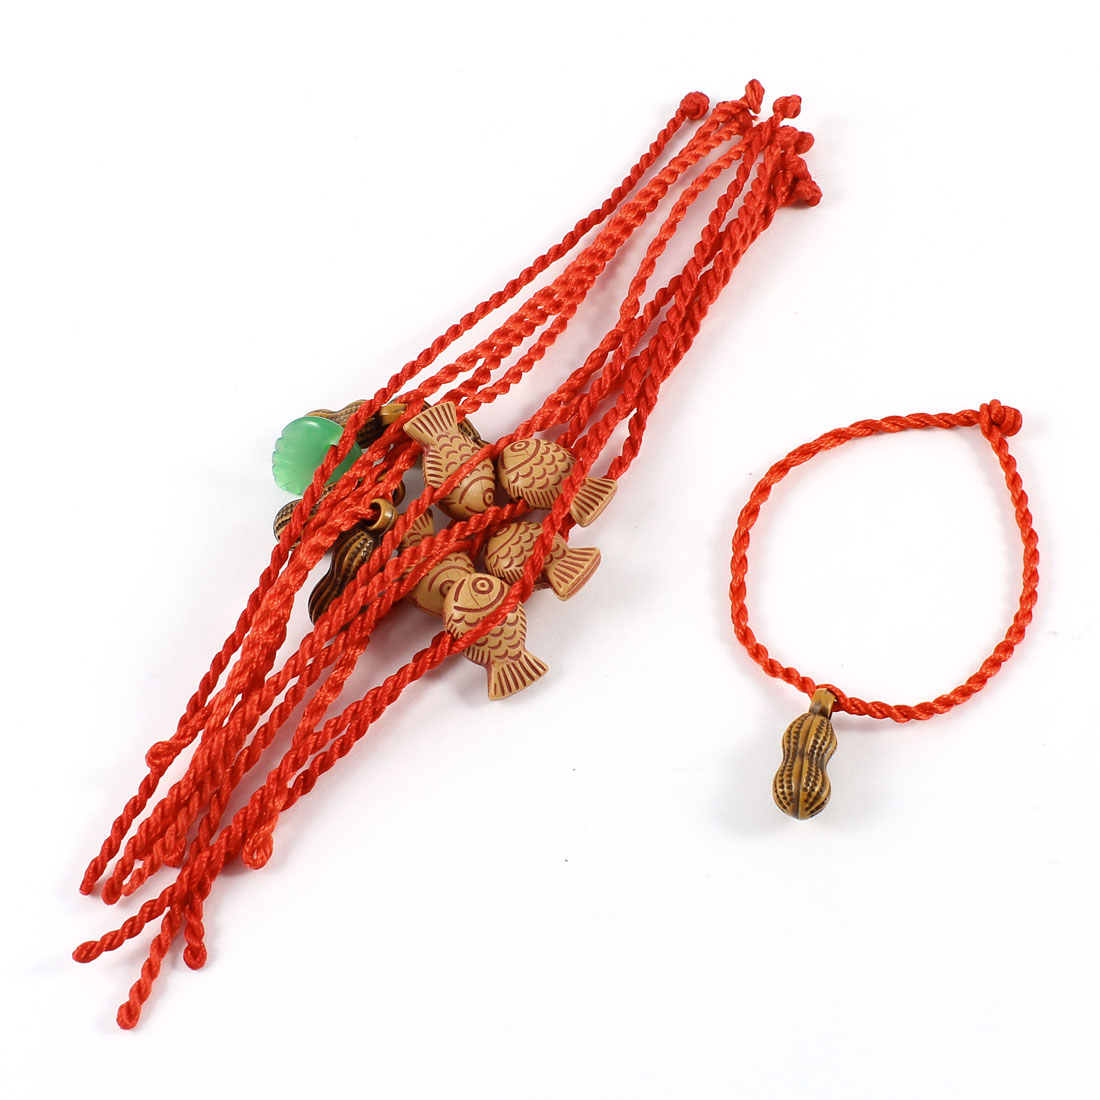 Green Faux Jade Leaf Detail Red Knitted Cord Anklet Bracelet 11 Pcs